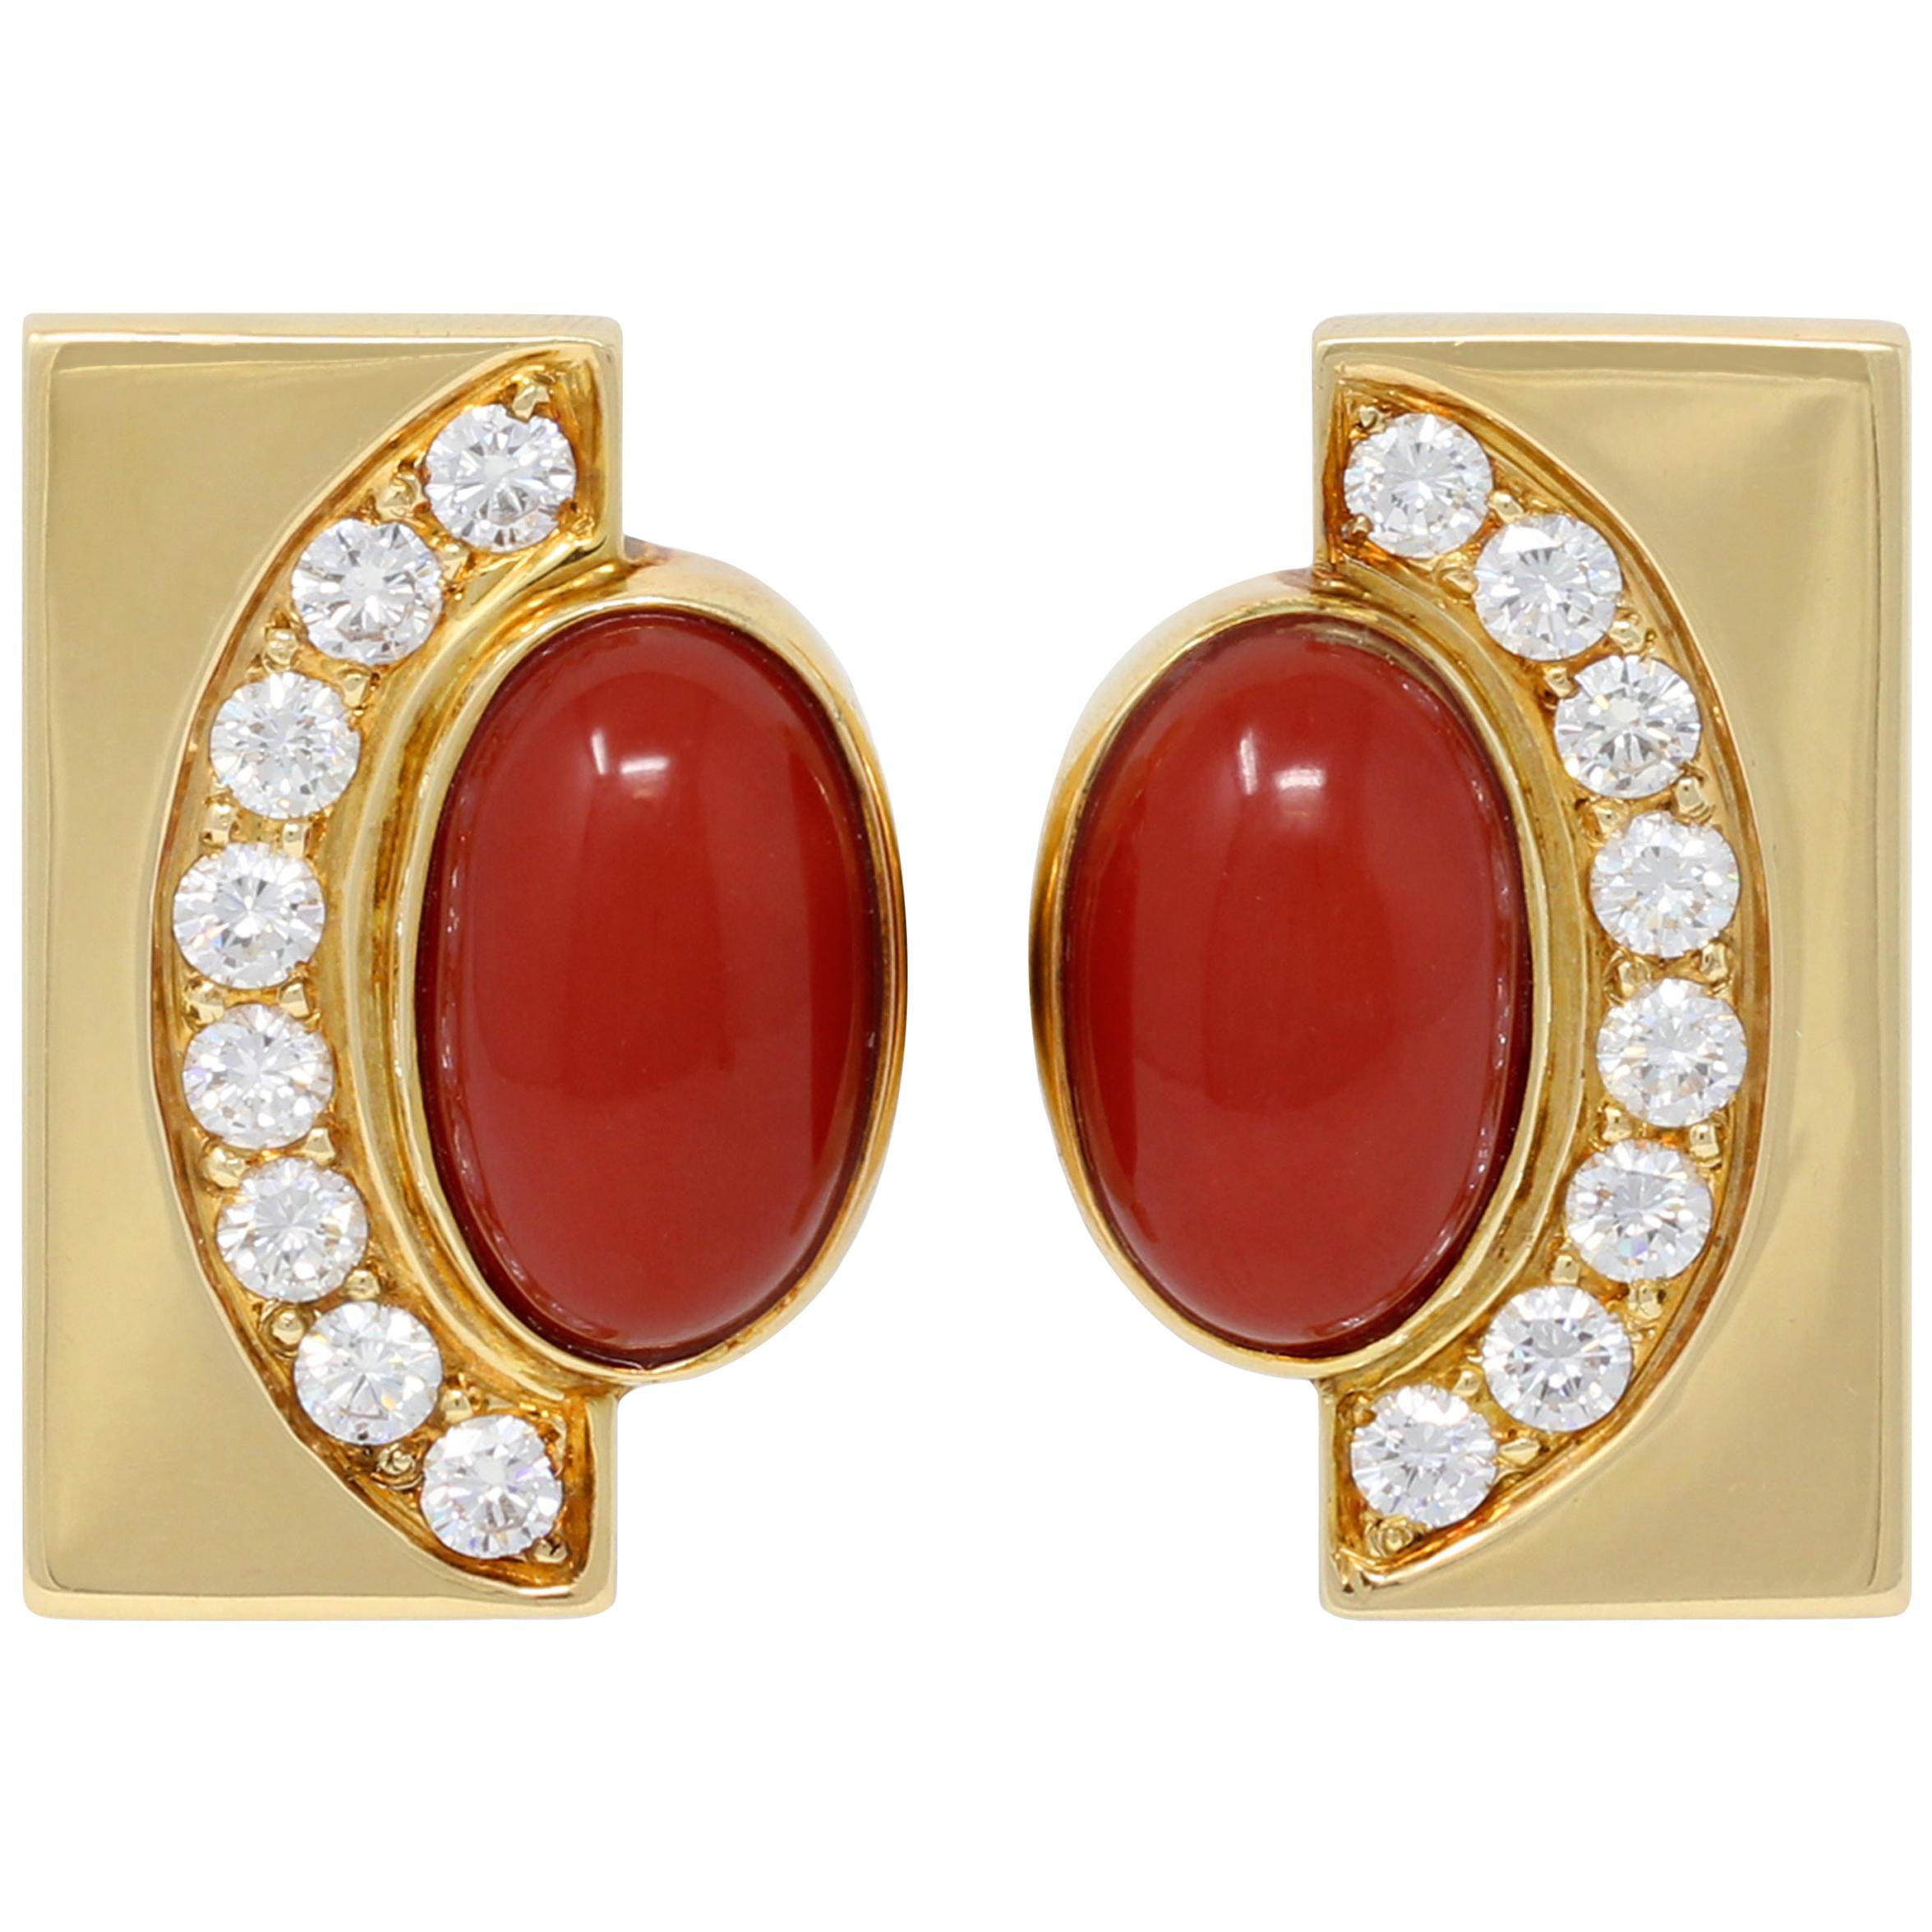 Pair of Coral, Diamond and 18 Karat Yellow Gold Earclips